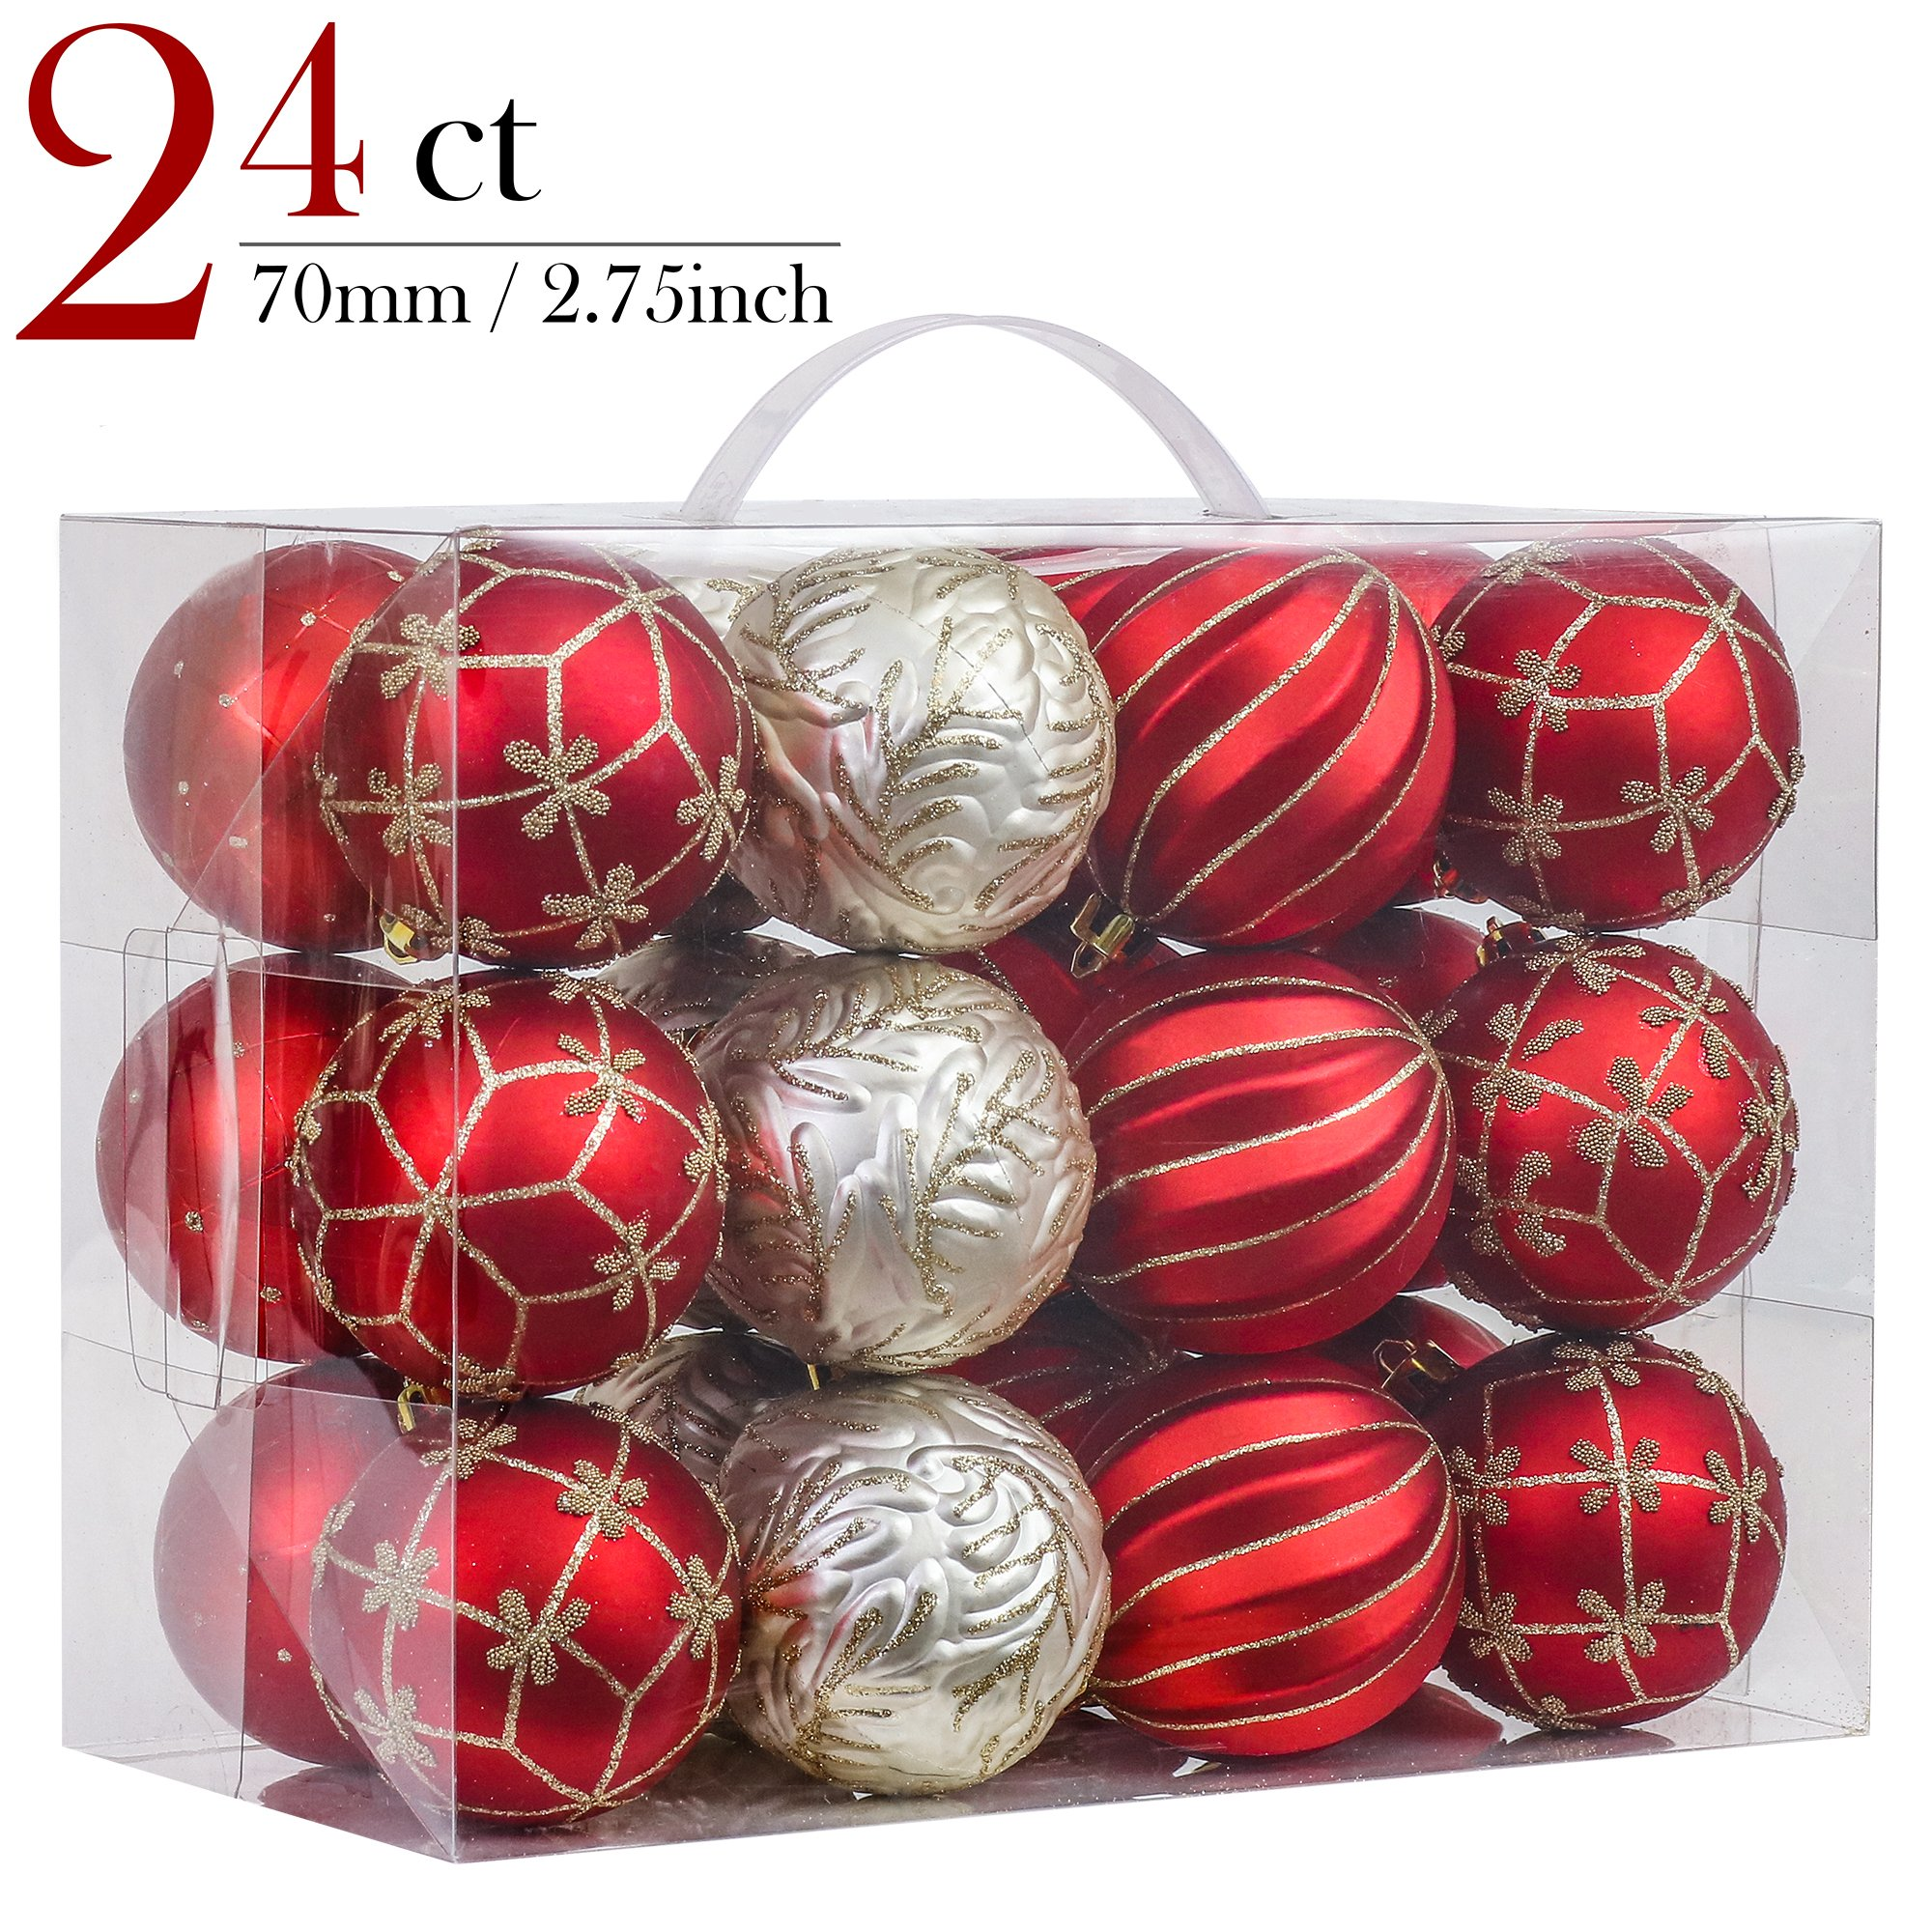 V&M VALERY MADELYN 24ct Shatterproof Christmas Balls Ornaments Luxury Red and Gold,2.76inch/7CM Christmas Hanging Ornaments,24 Hooks Included, Themed with Tree Skirt(Not Included)